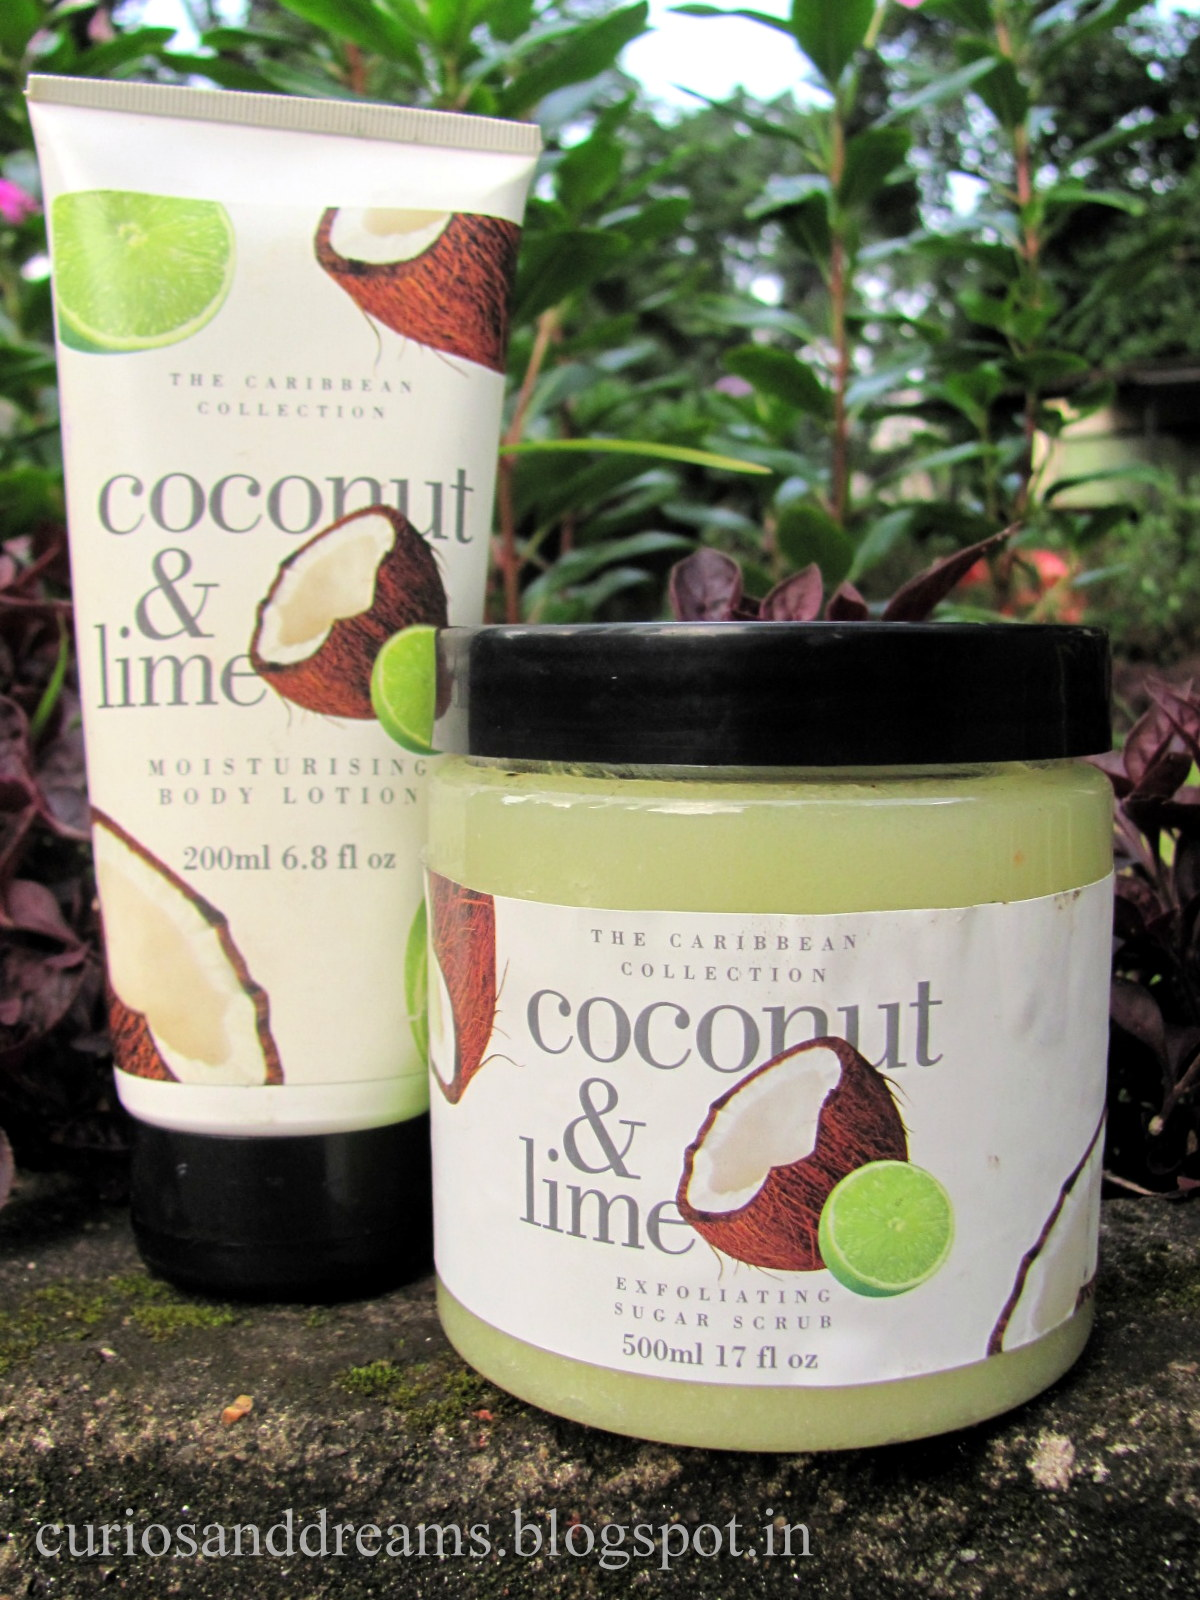 The Caribbean Collection , The Caribbean Collection Coconut & Lime review, The Caribbean Collection Coconut & Lime